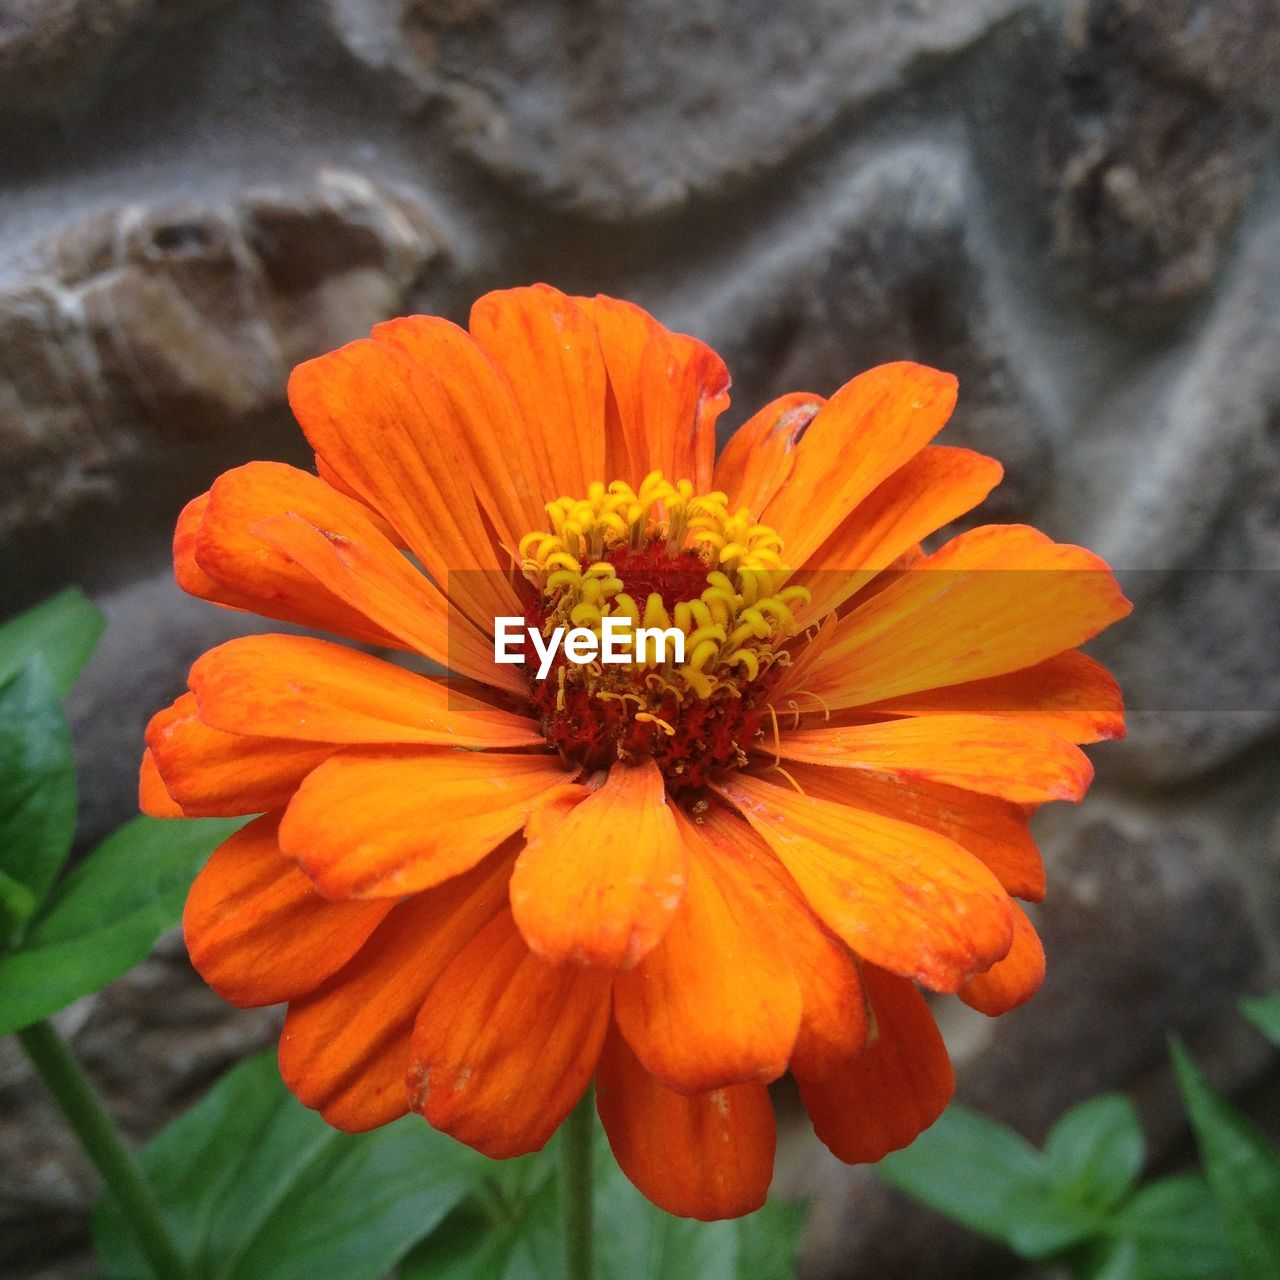 flower, petal, flower head, nature, beauty in nature, fragility, growth, freshness, pollen, plant, blooming, orange color, outdoors, day, focus on foreground, no people, close-up, yellow, zinnia